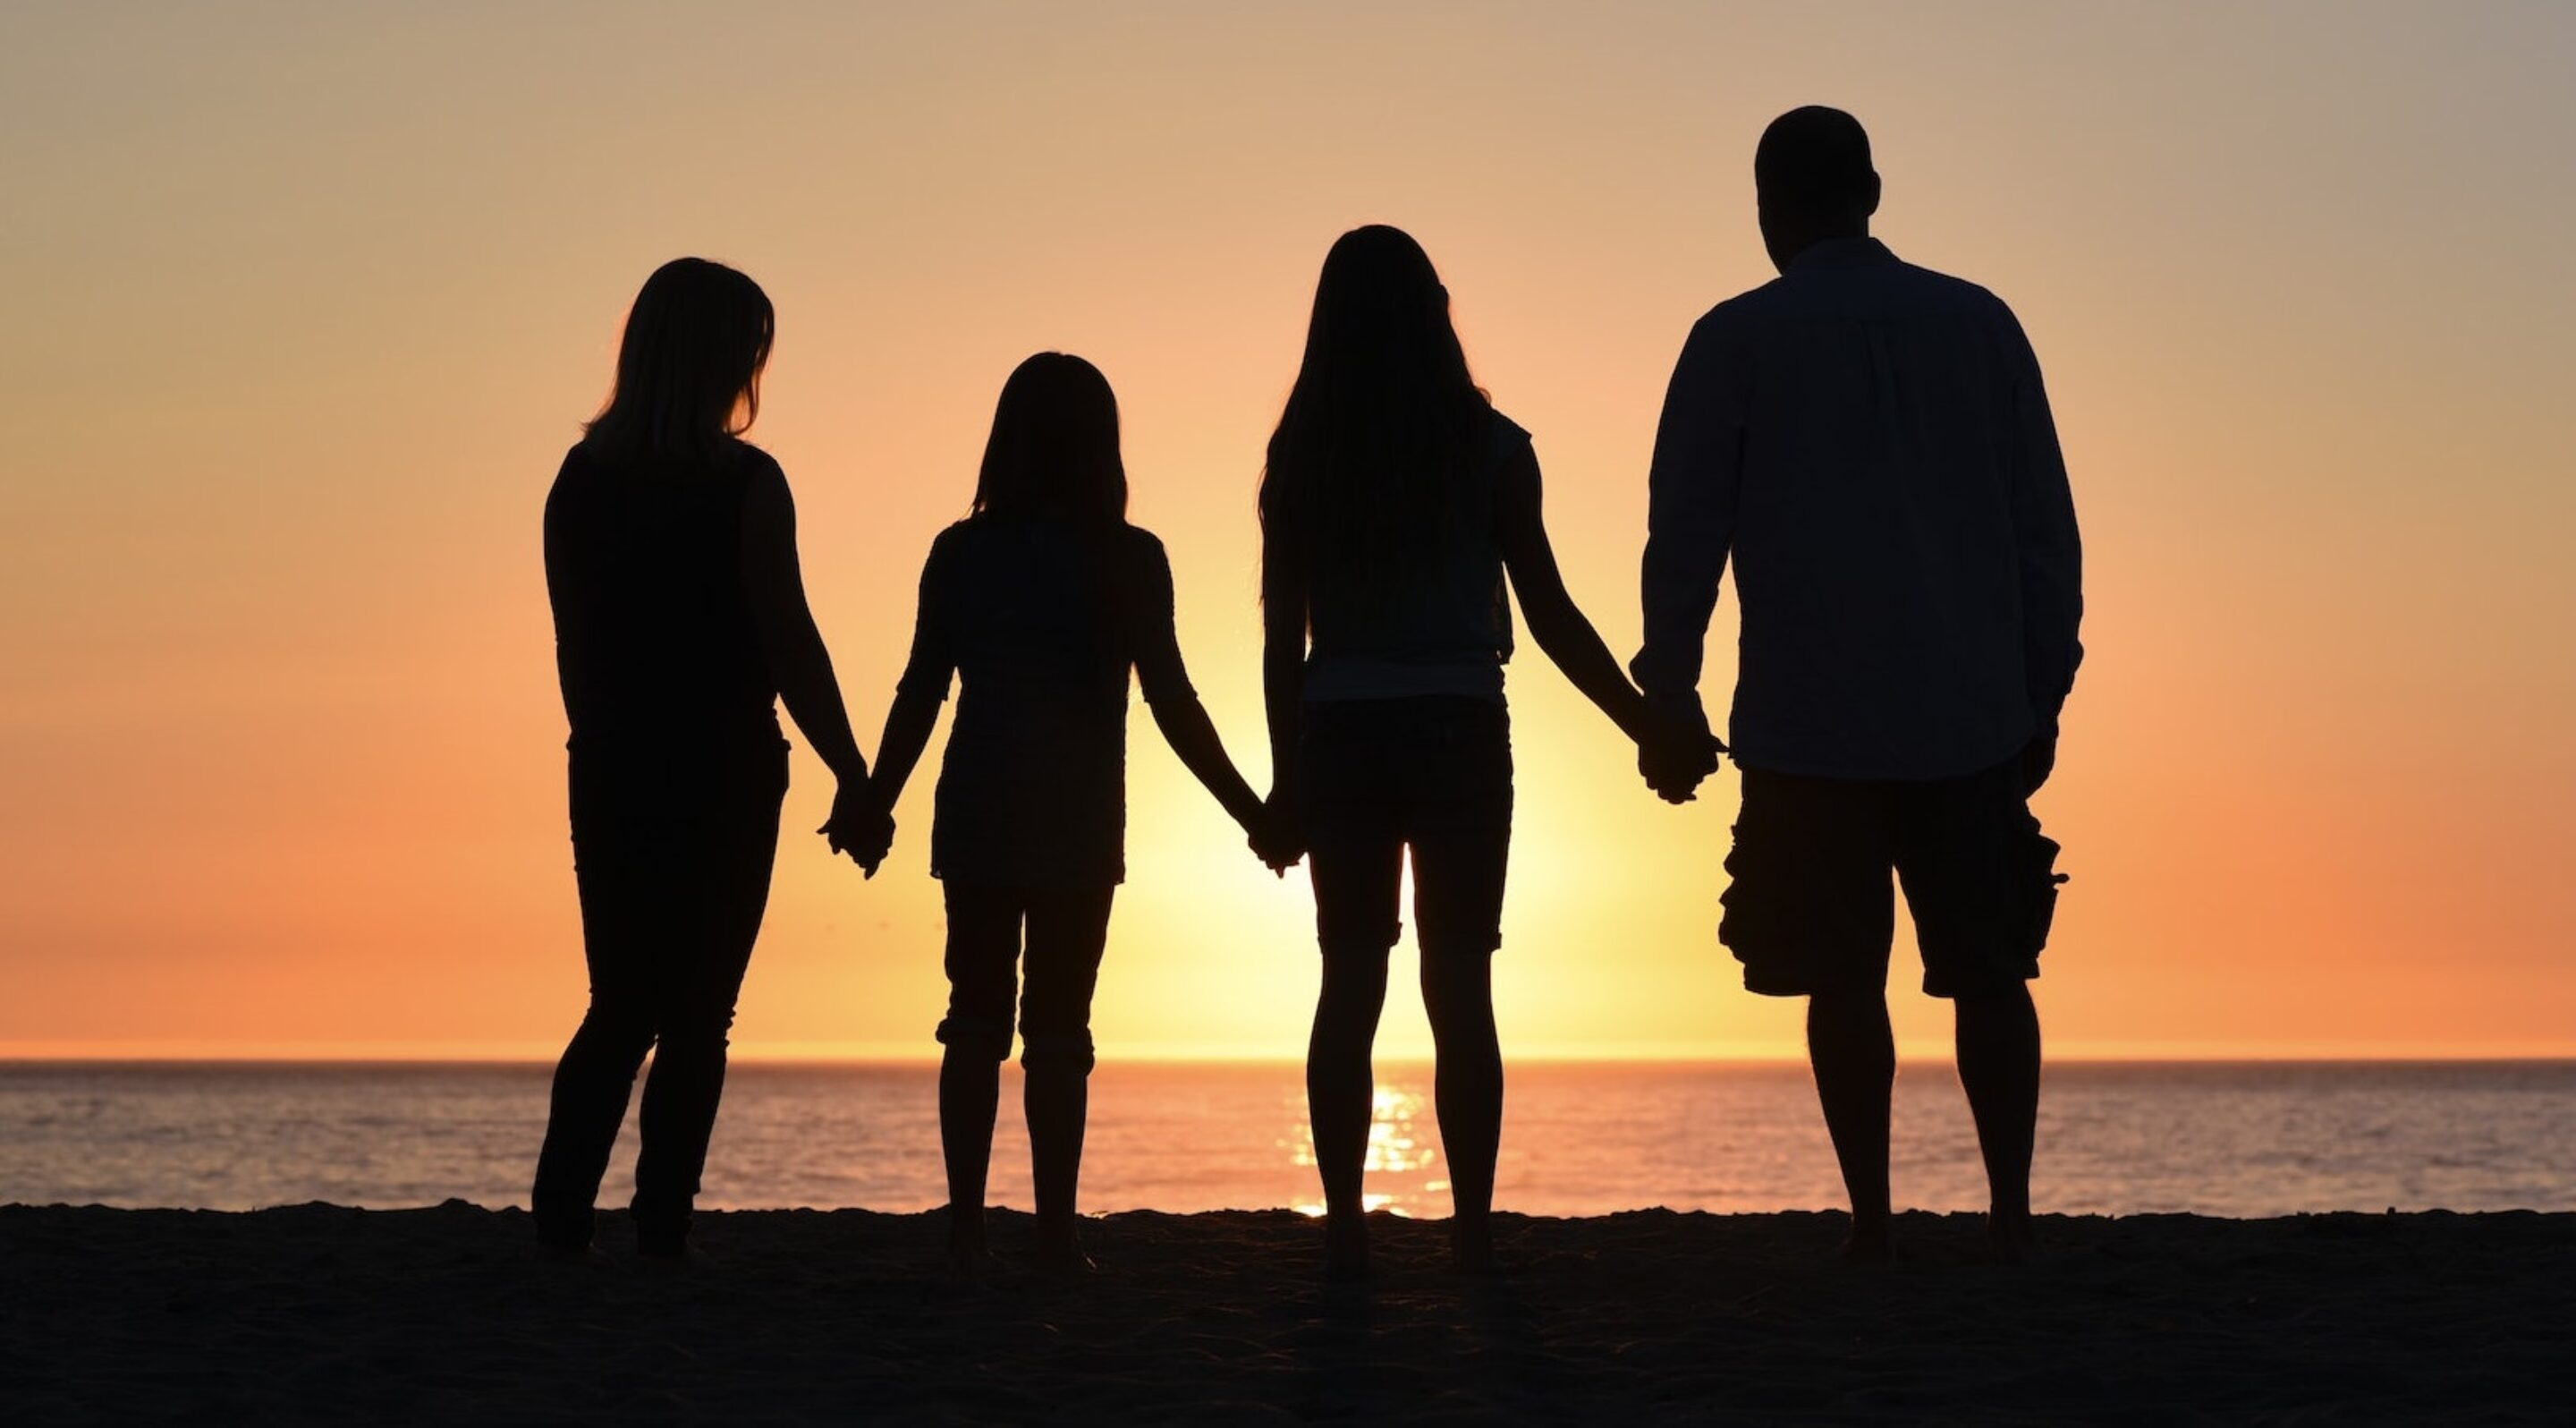 Silhouette of a family on a beach at sunset